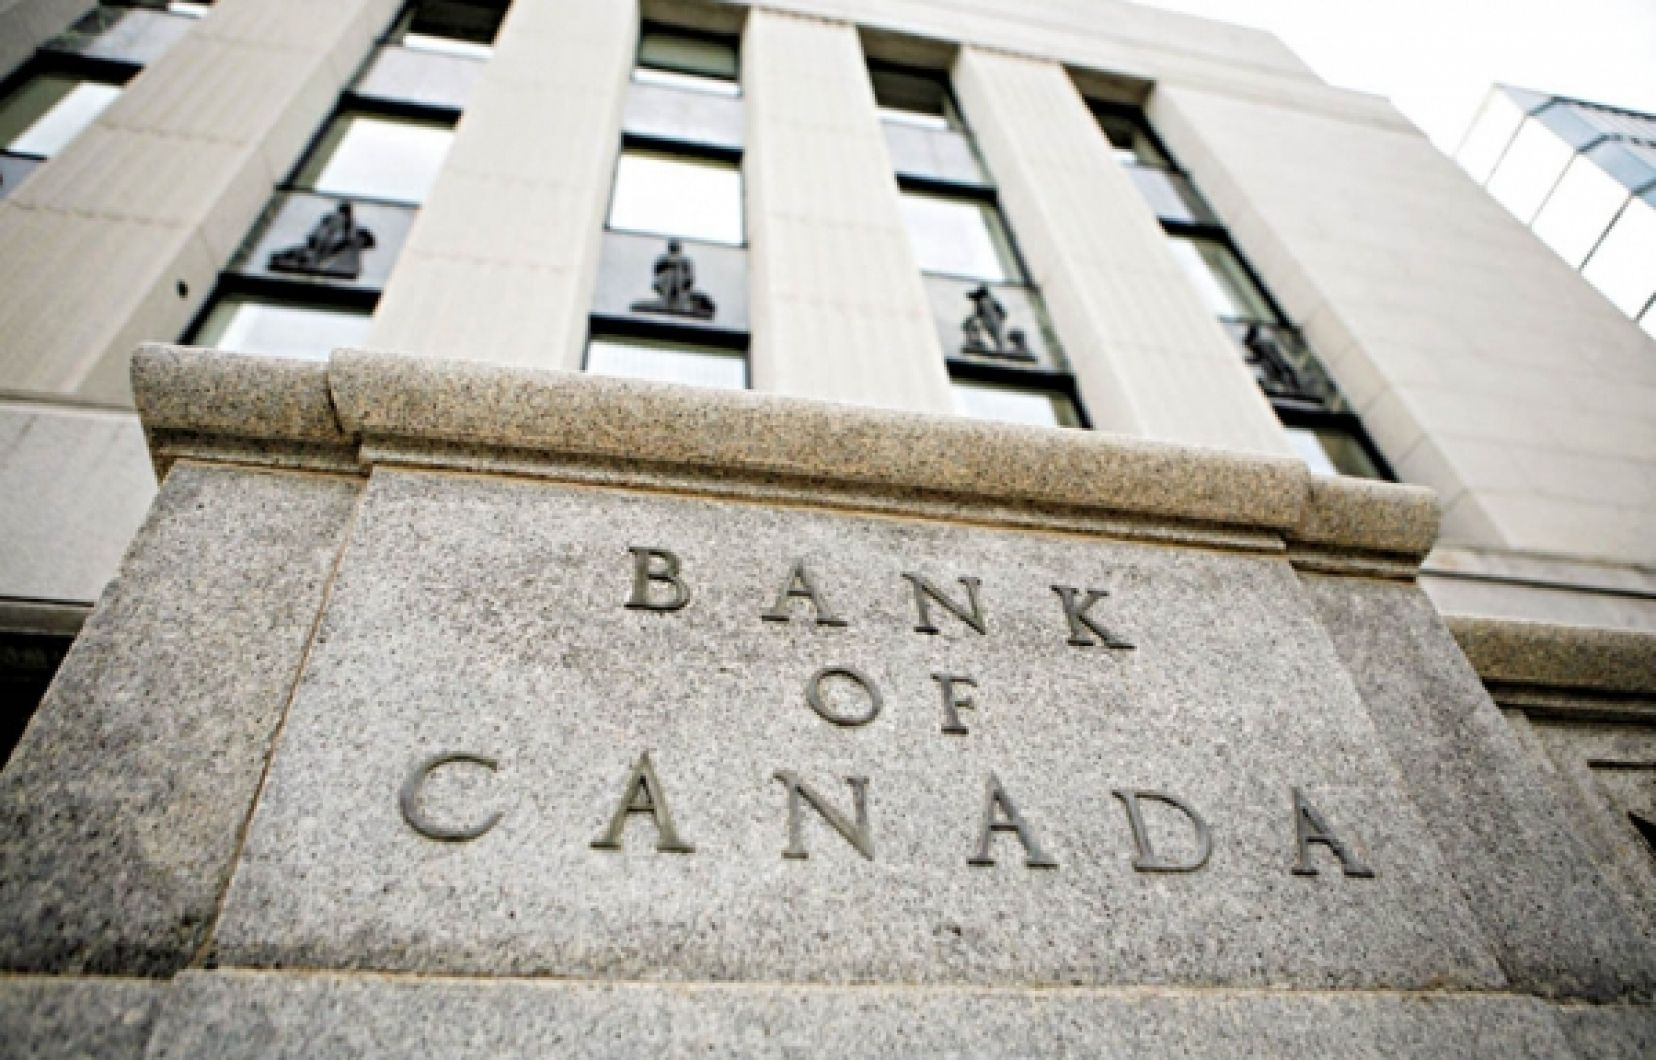 Bank of Canada lays groundwork for digital currency